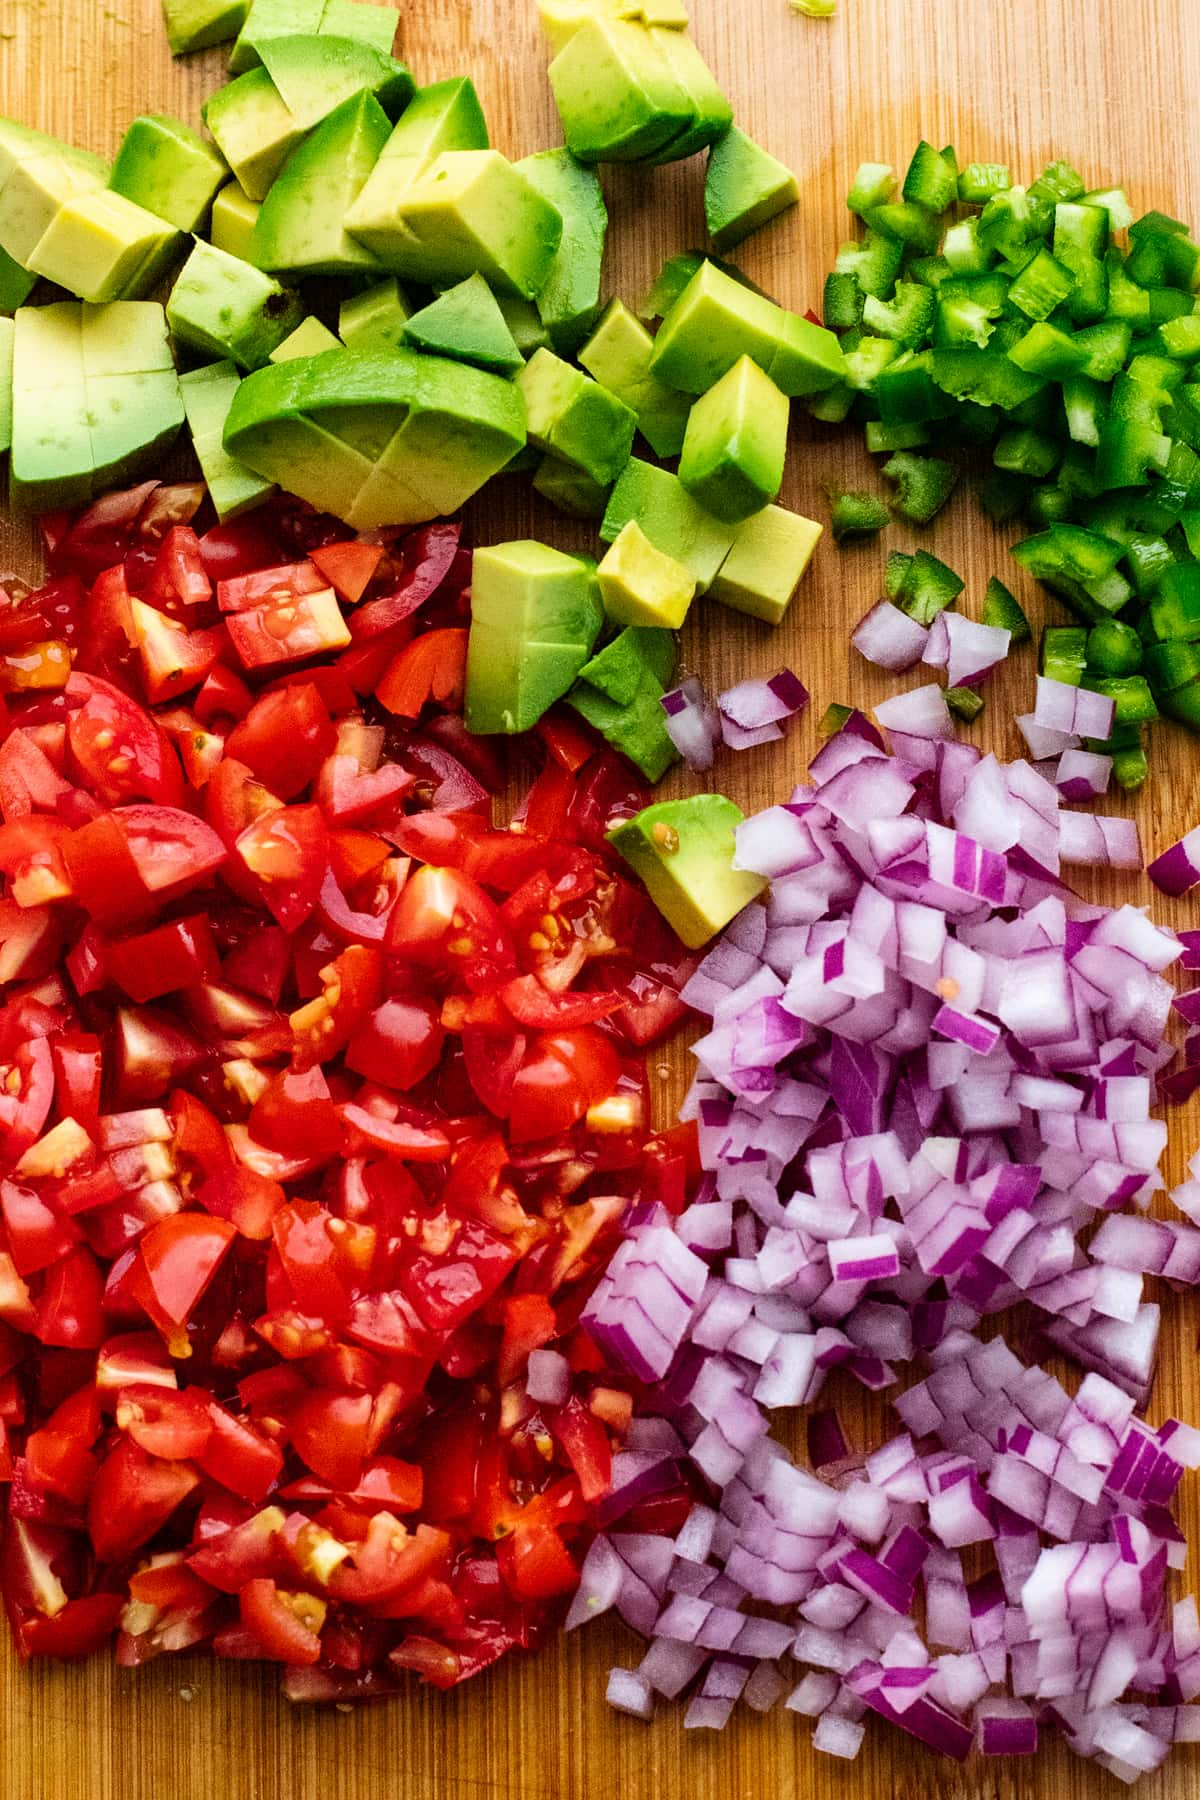 chopped vegetables for salsa arranged on wooden cutting board.